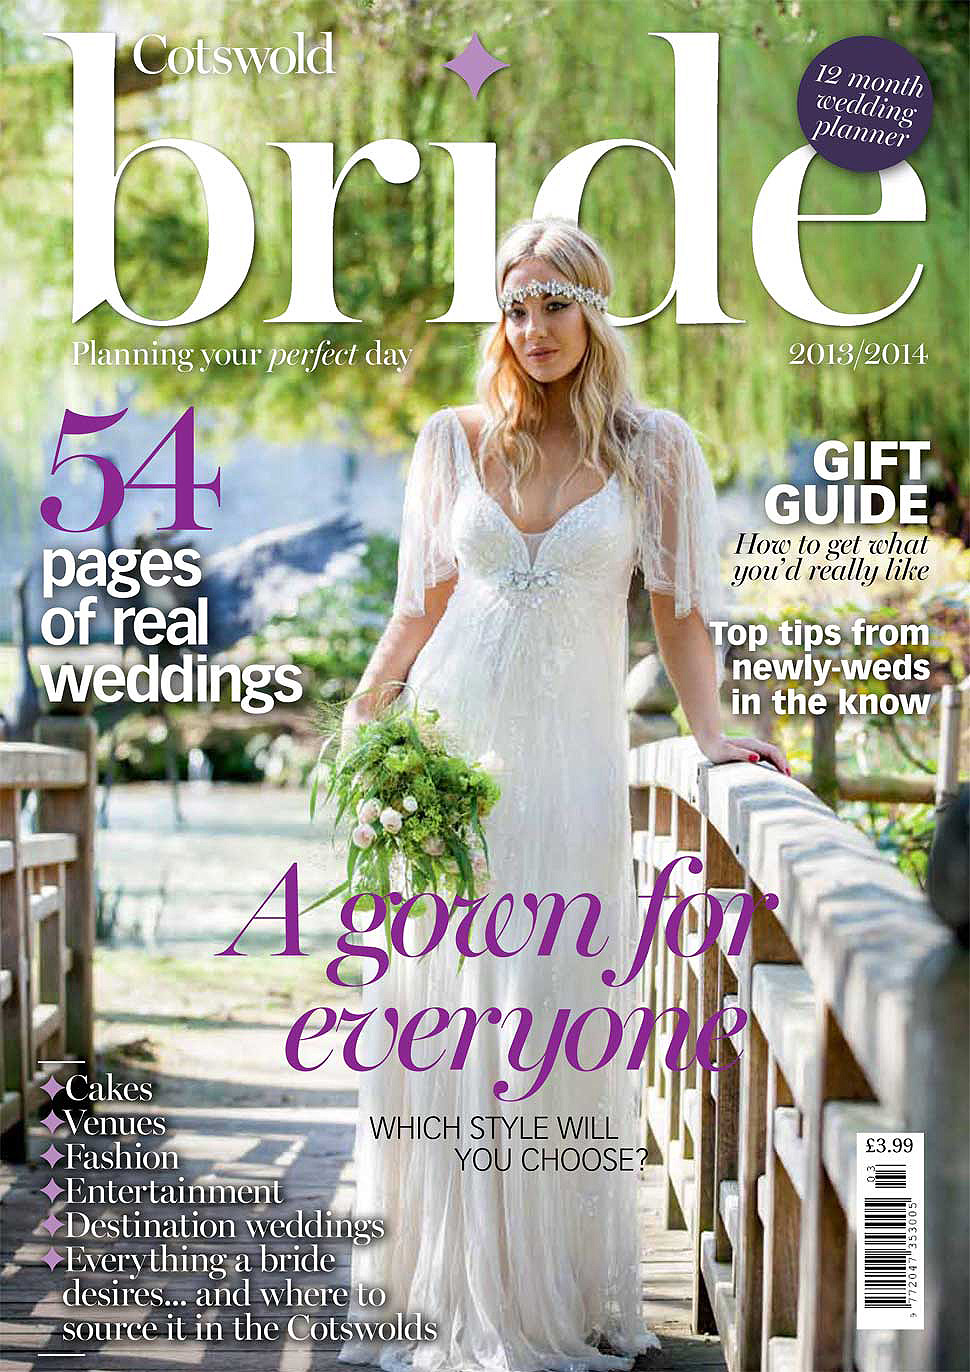 photograph if bride on a bride at le manoir